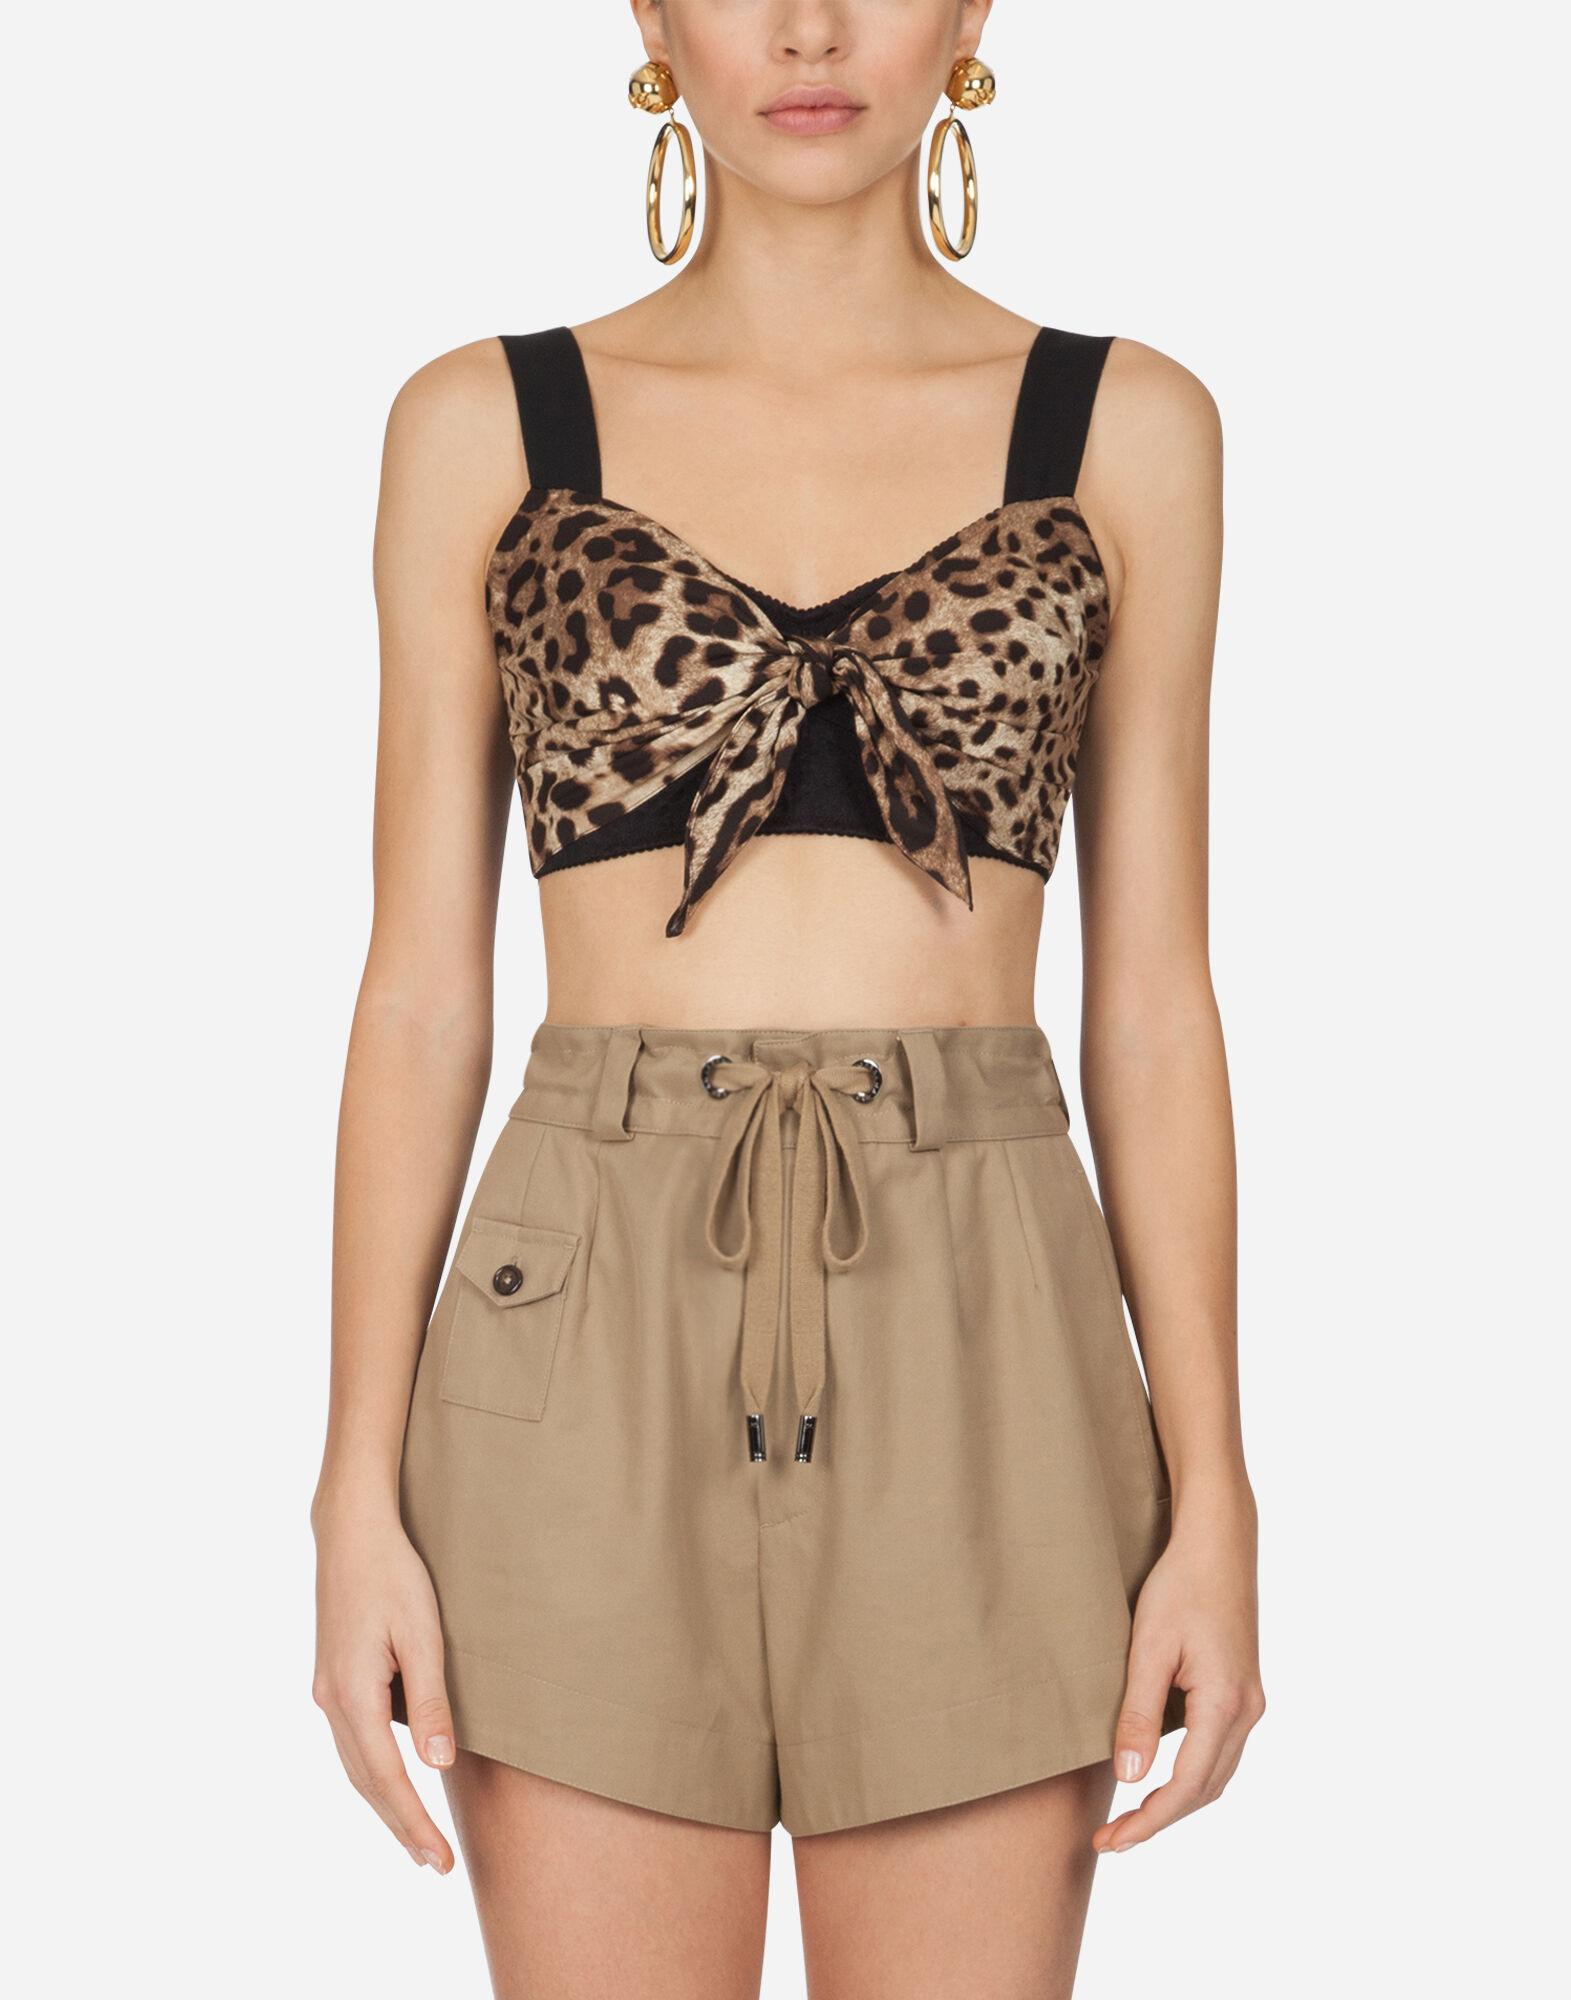 Poplin top with leopard print and brassiere